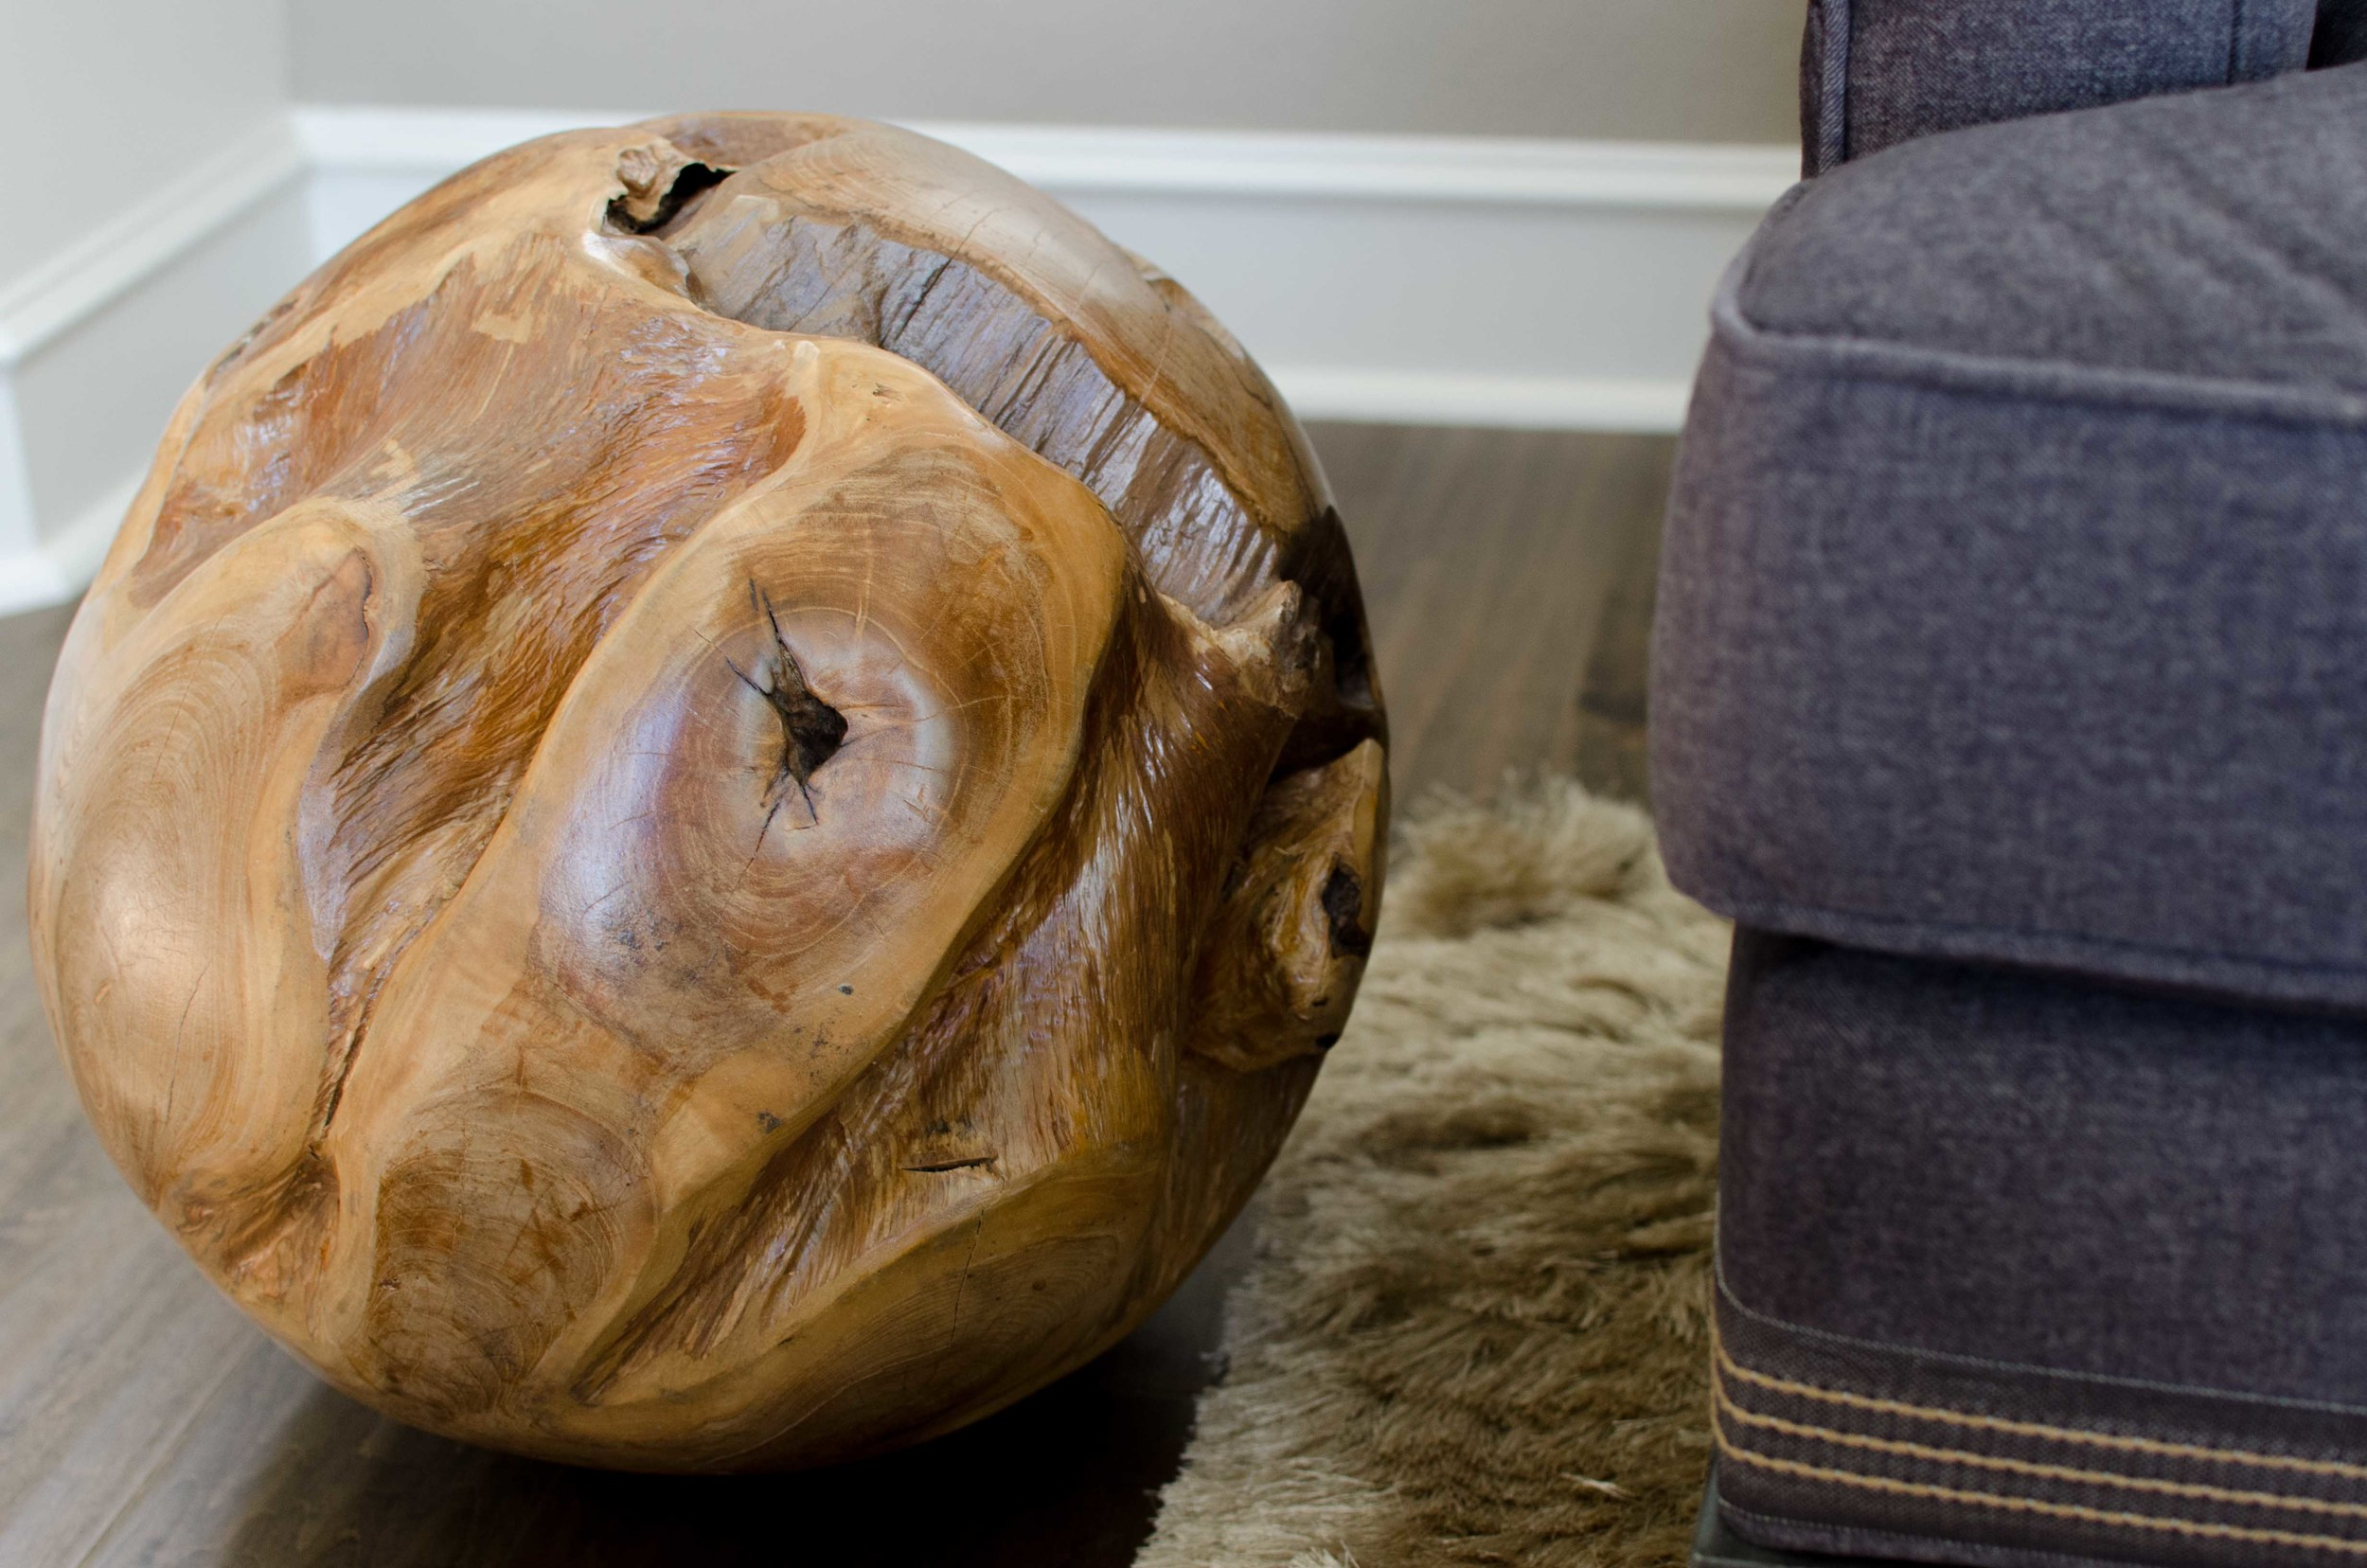 Wood ball sculpture and contrasting tape on sofa base